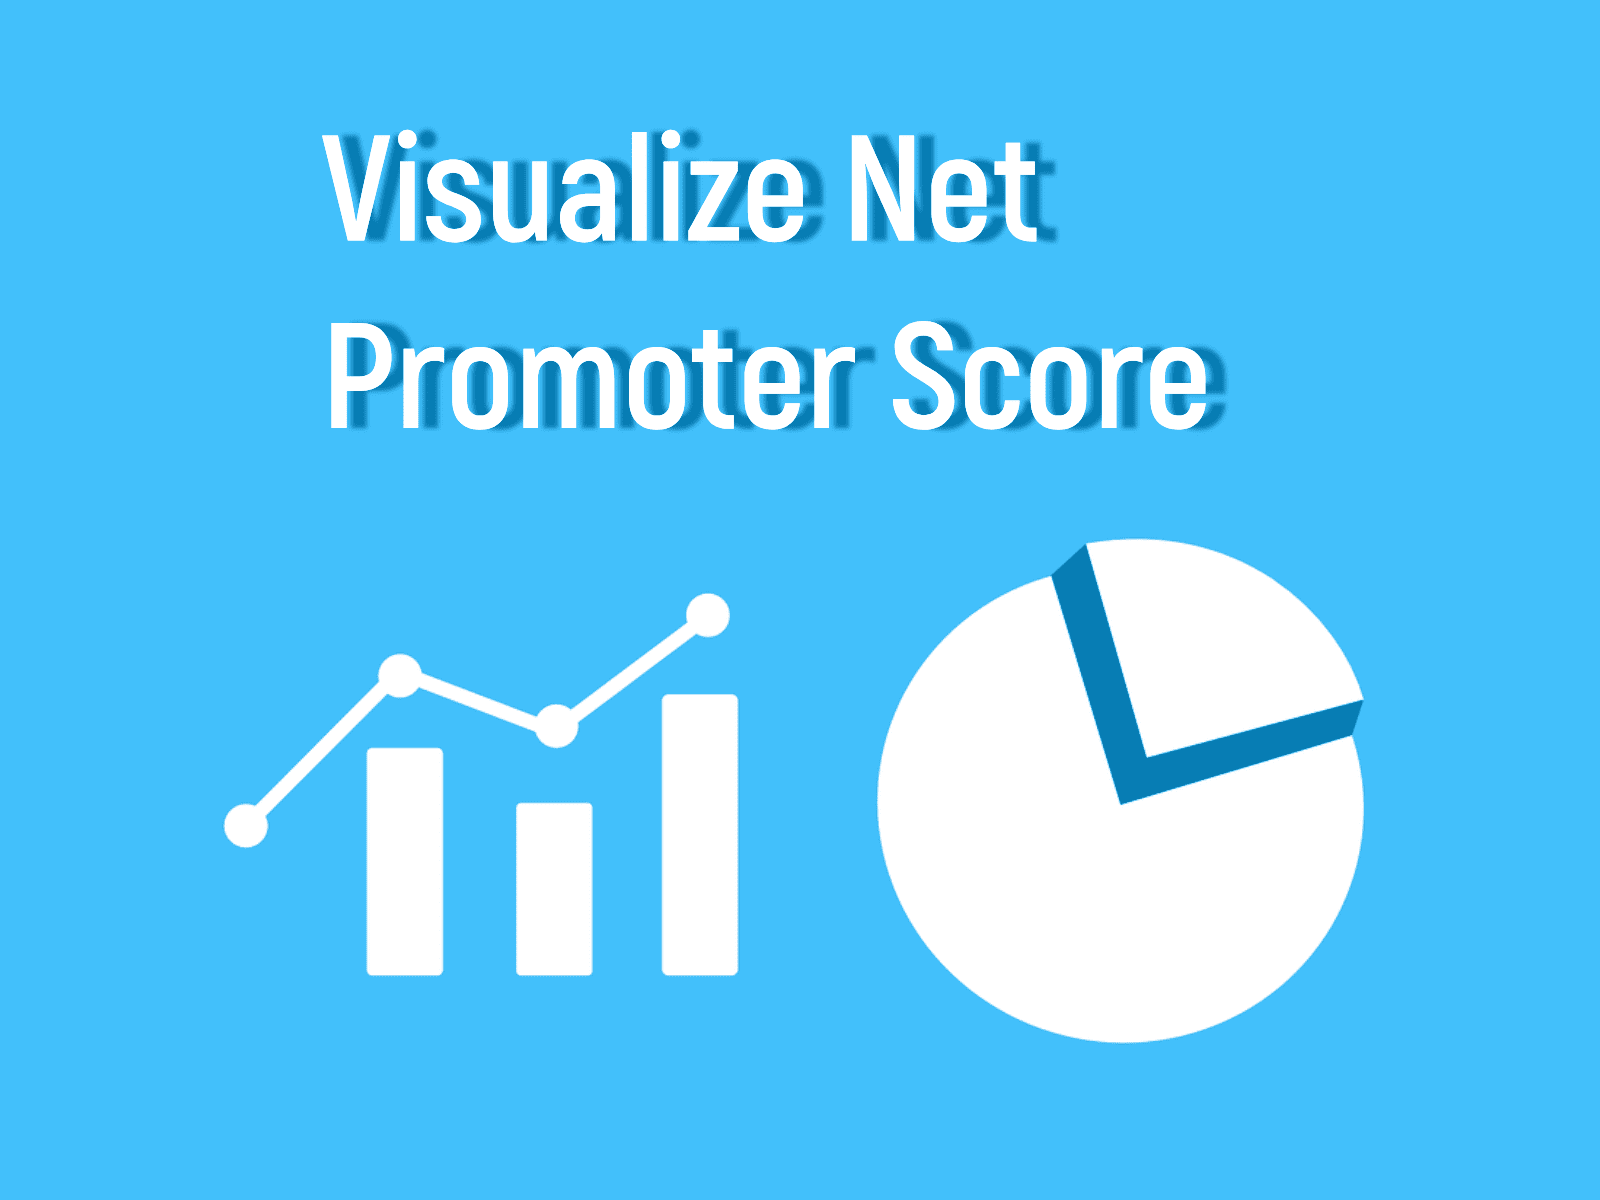 Top 5 ways to Visualize Net Promoter Score